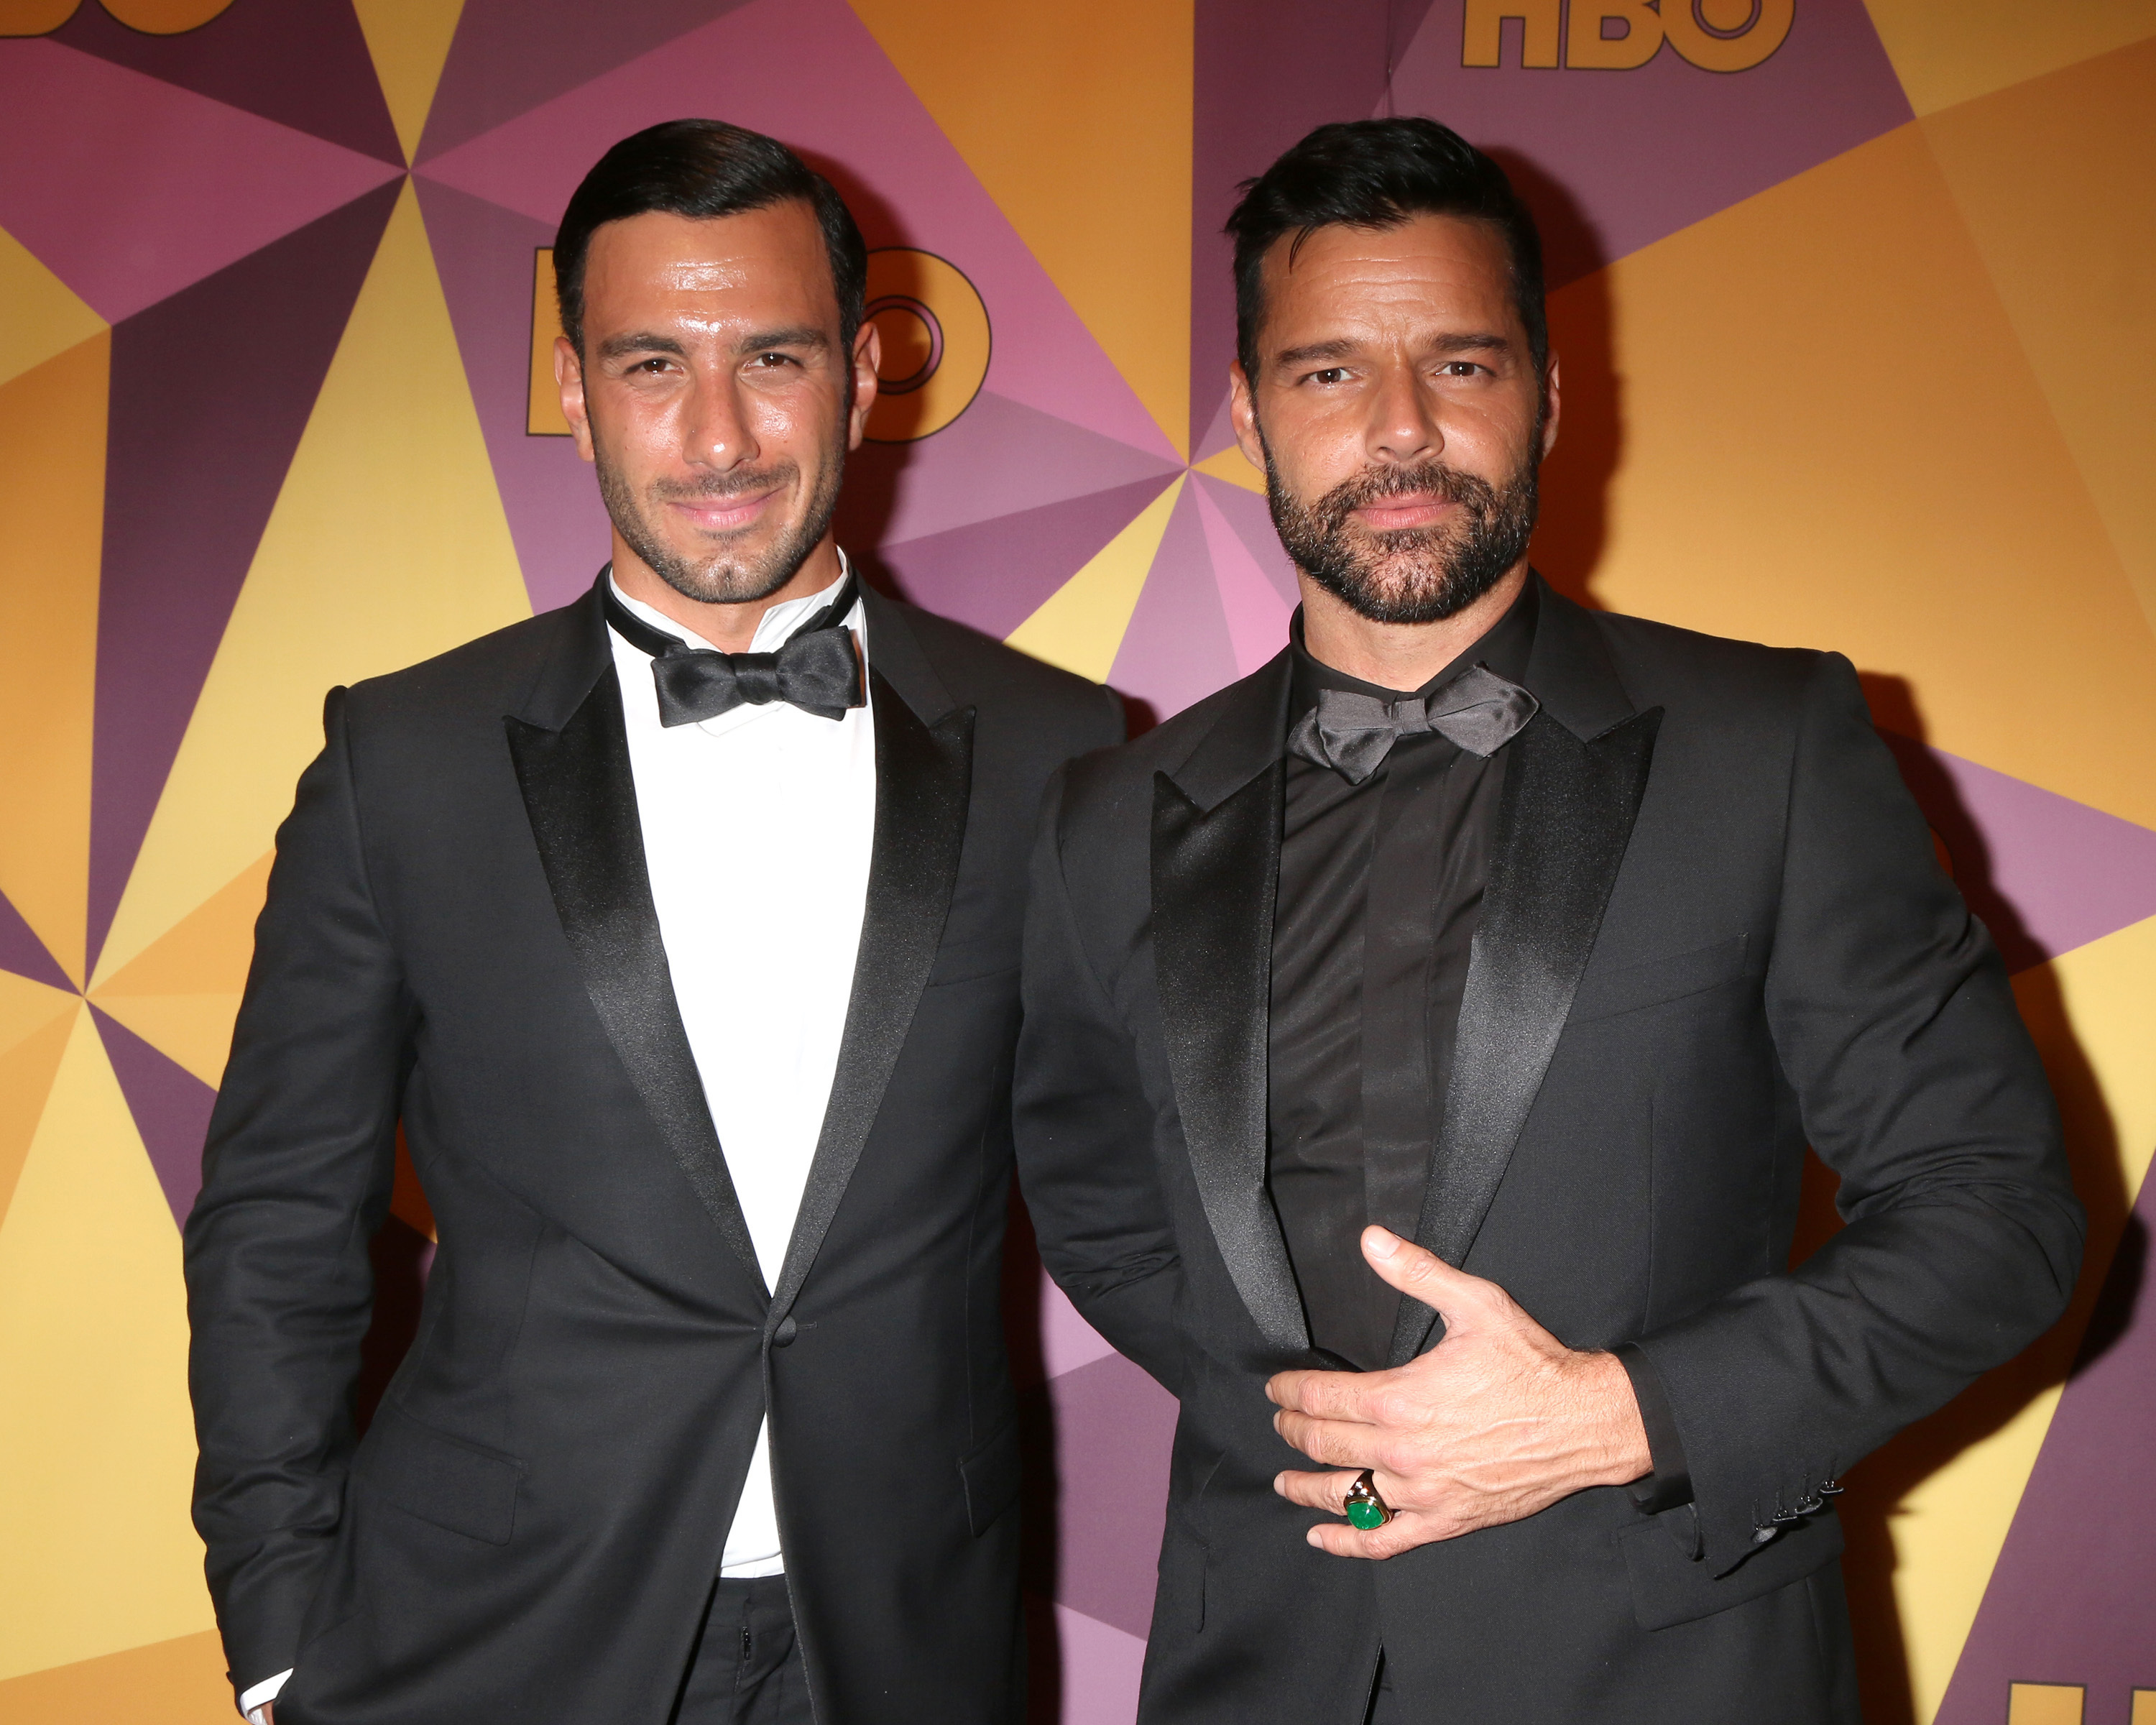 Ricky Martin Secretly Married Jwan Yosef Get The Details